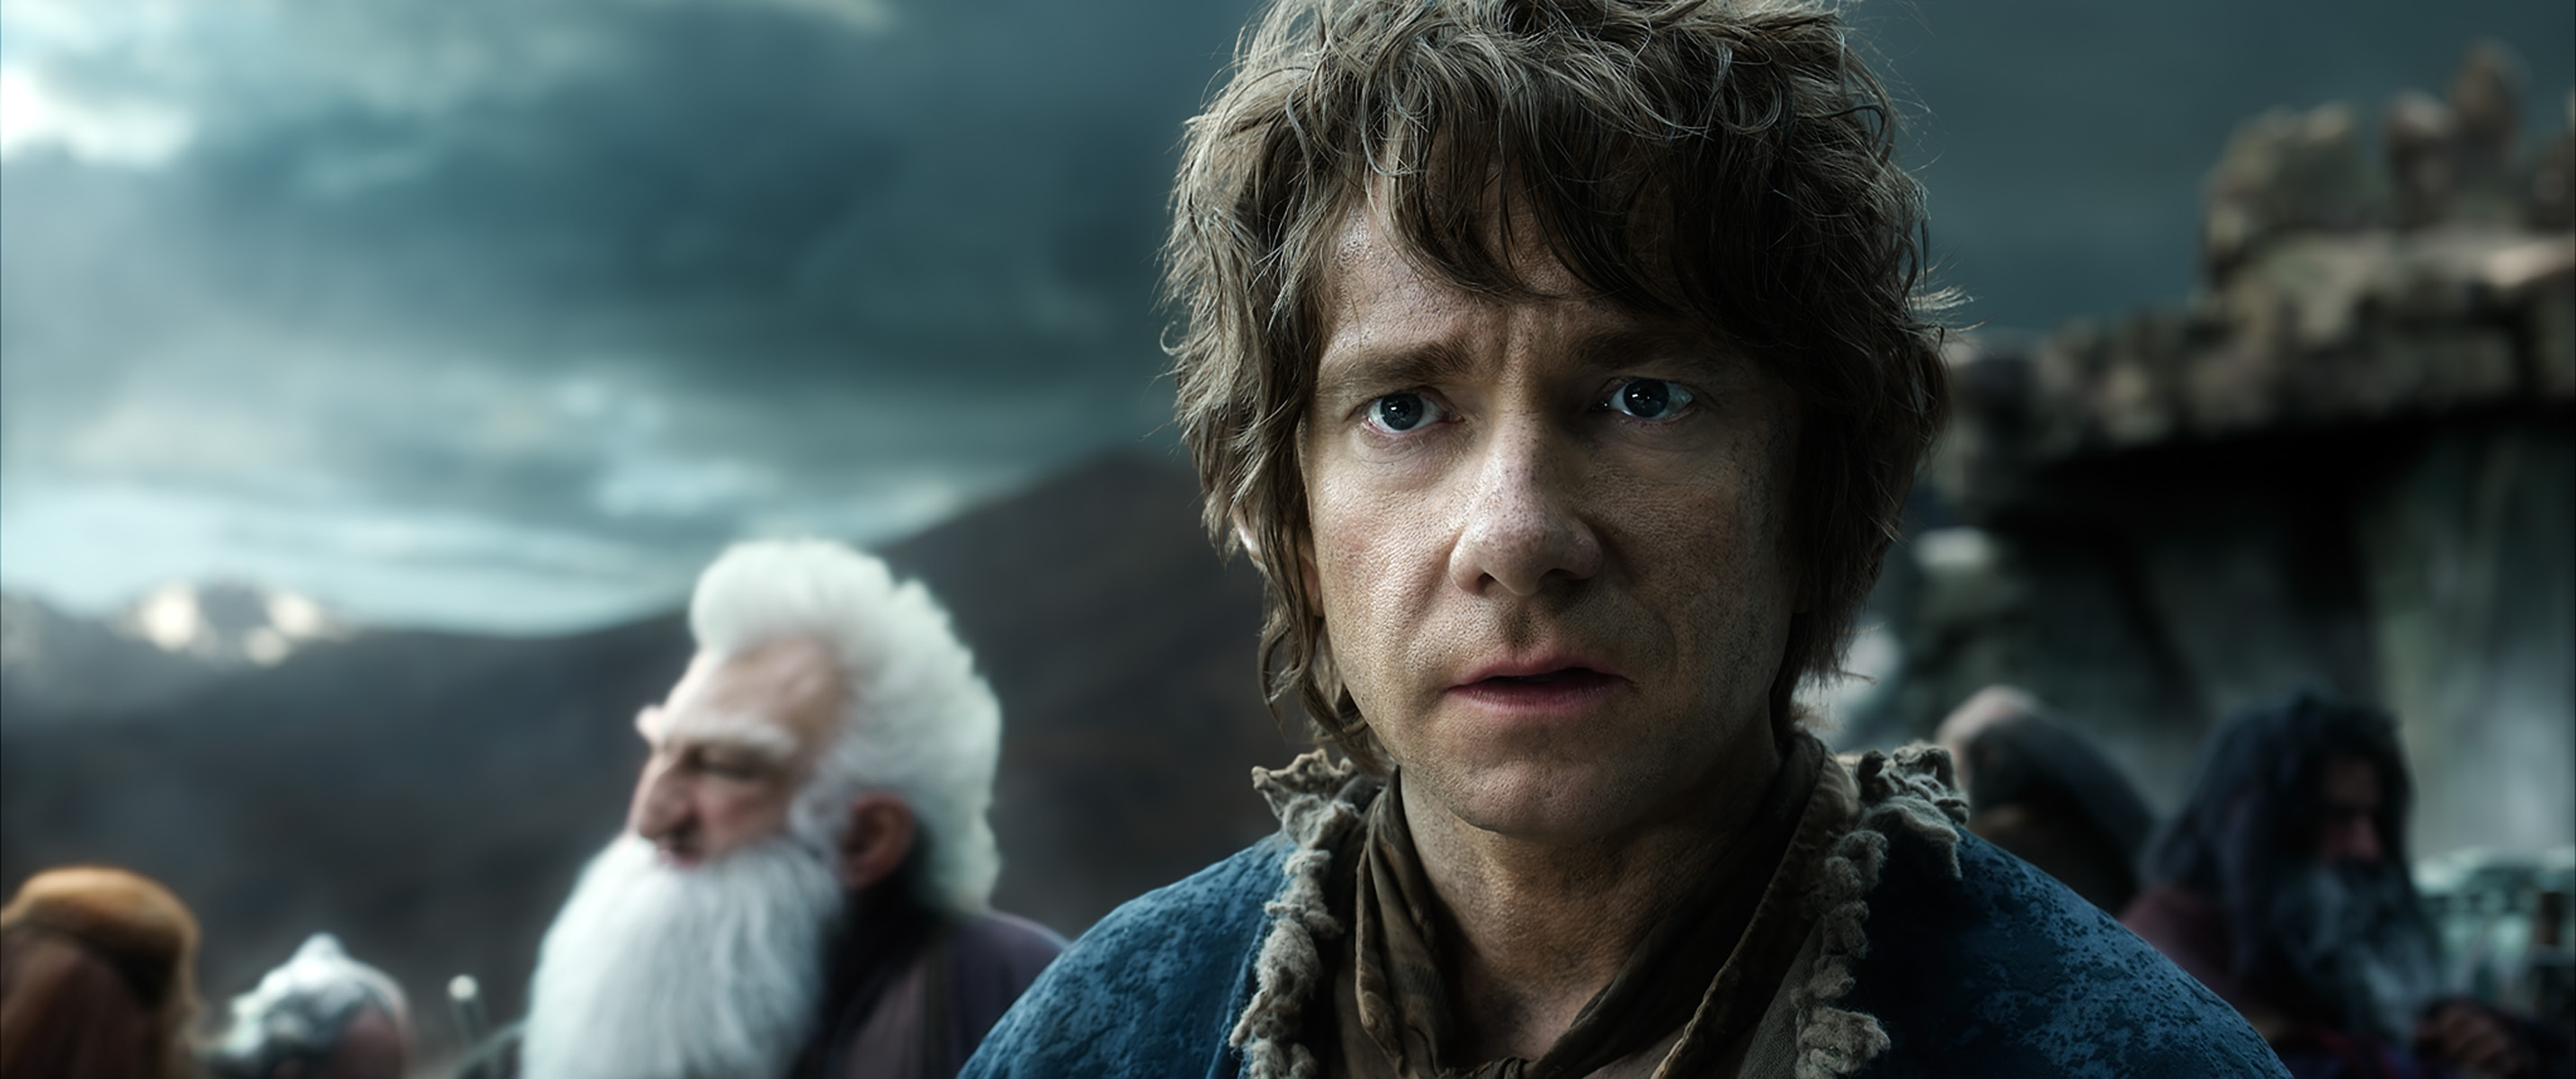 The Hobbit: The Battle of the Five Armies – Did You See ...